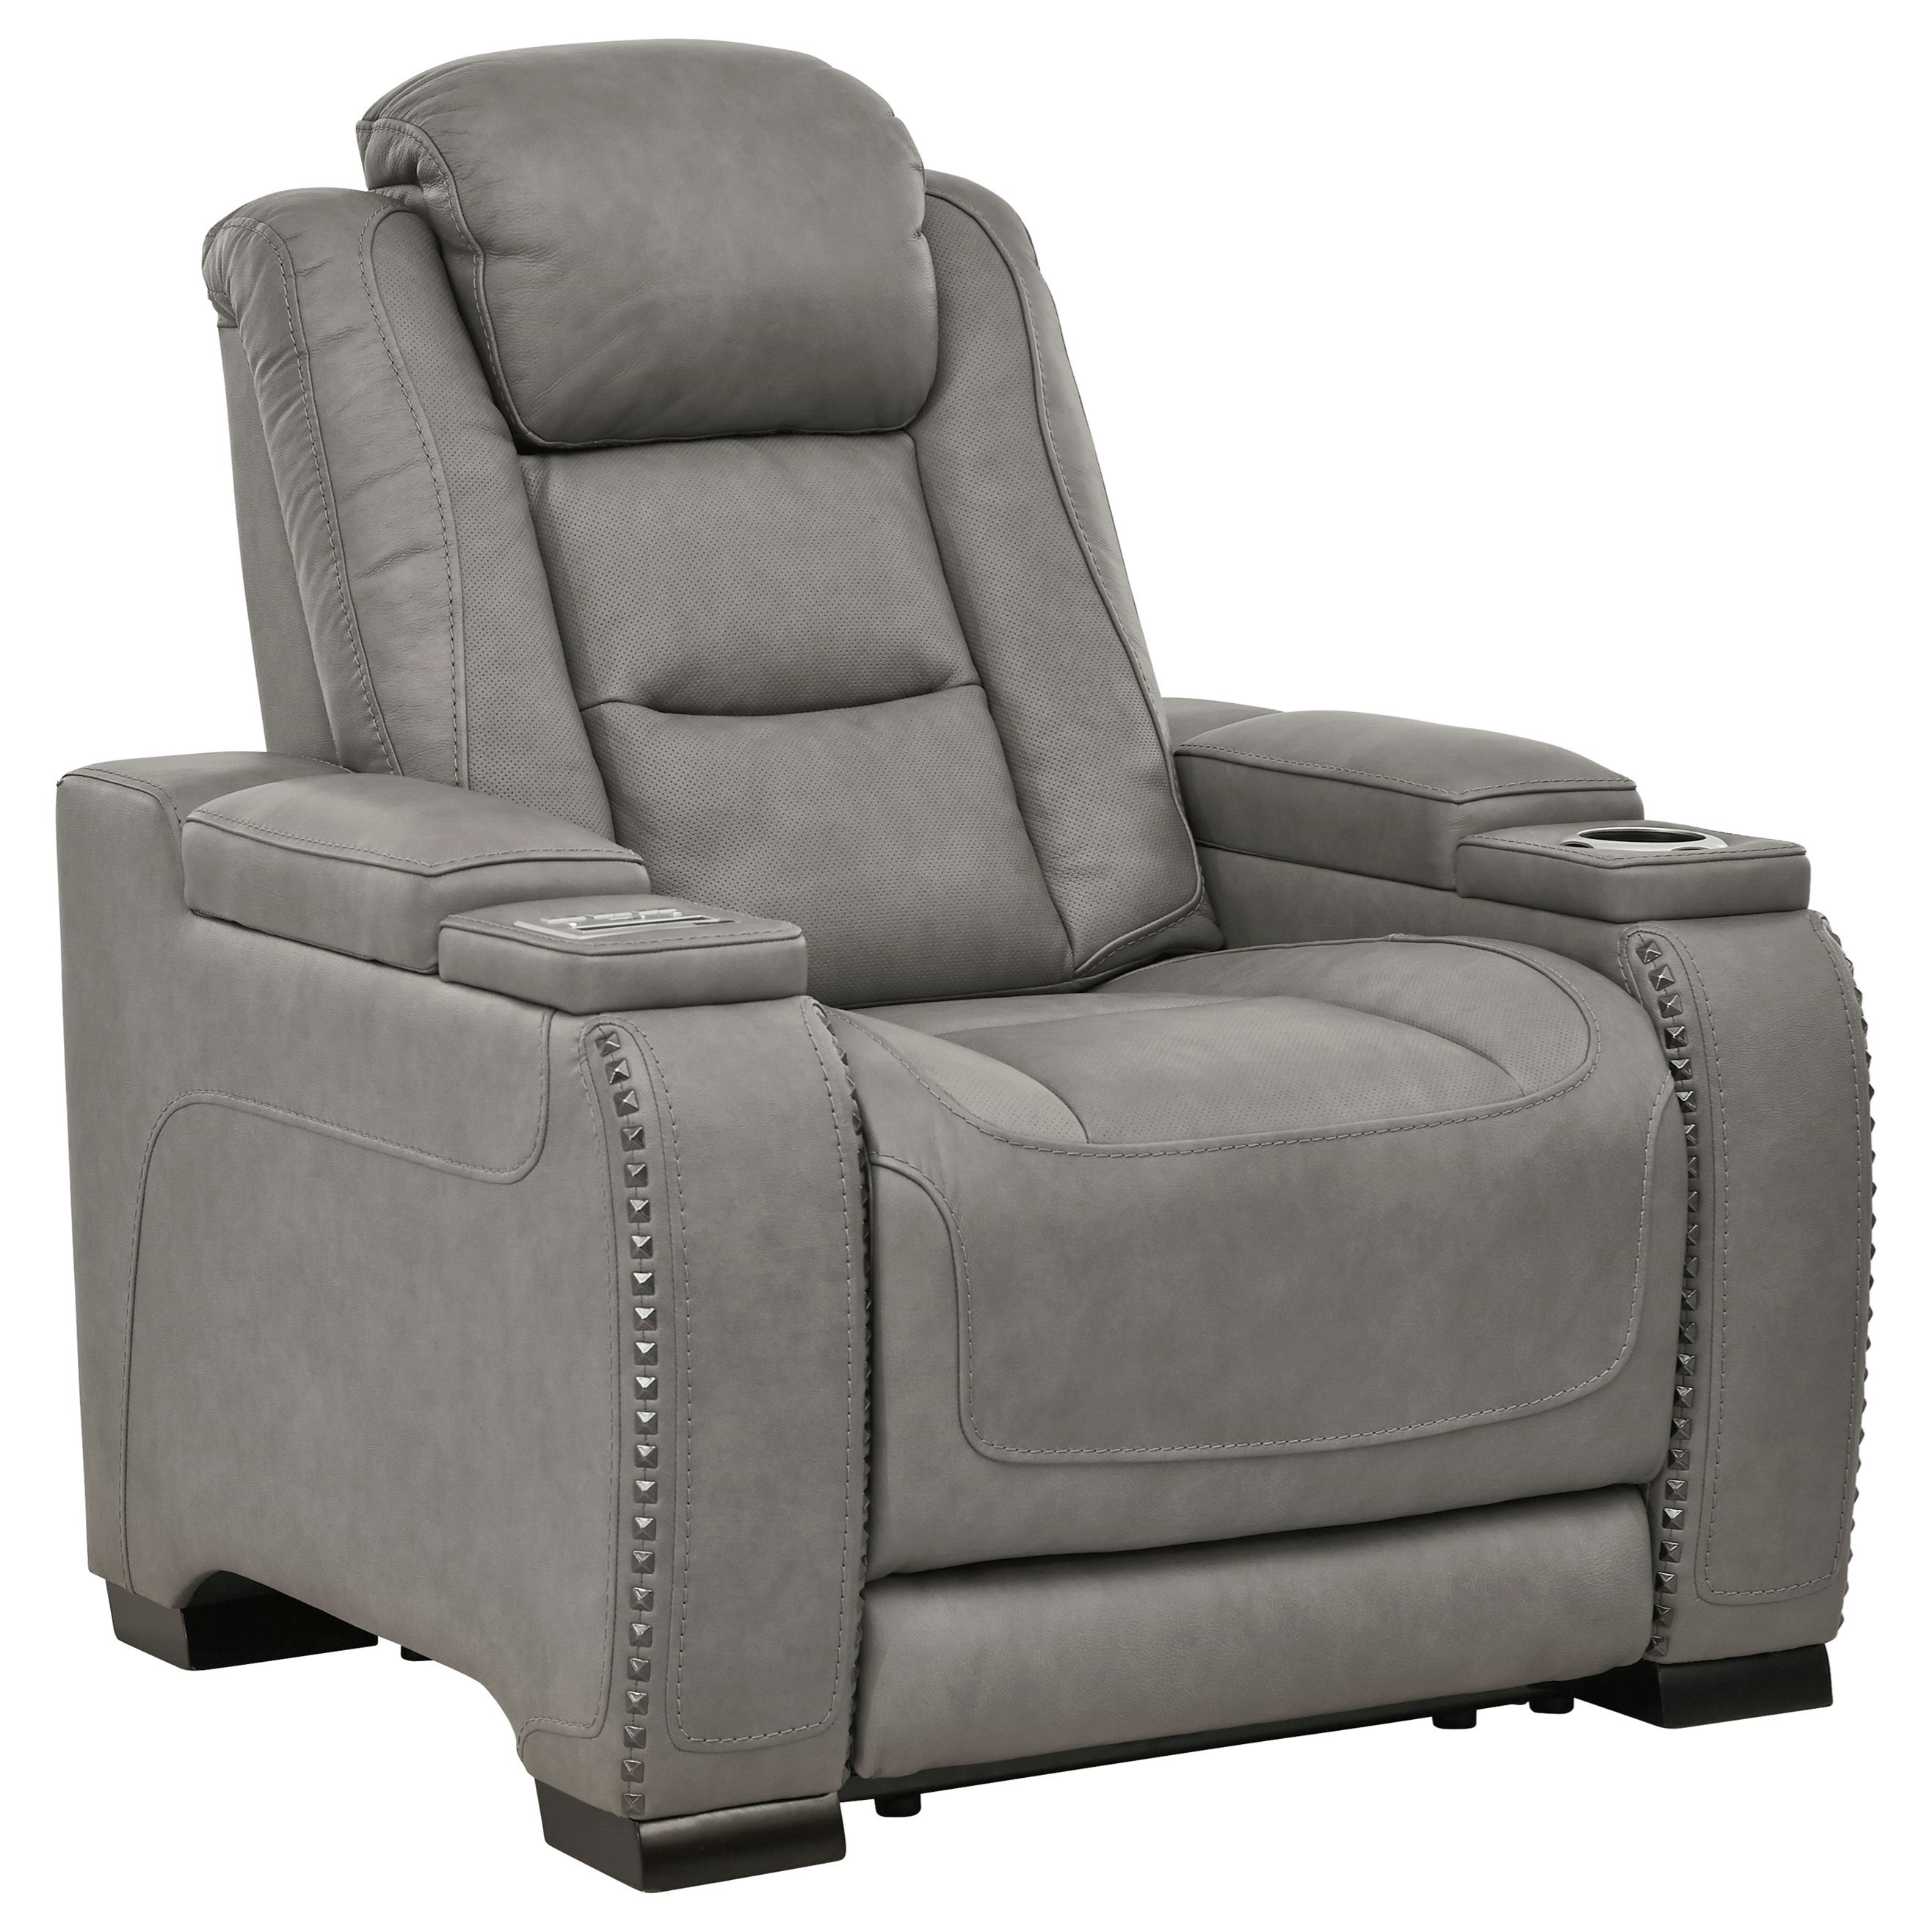 The Man-Den Power Recliner with Adjustable Headrest by Signature Design by Ashley at Northeast Factory Direct